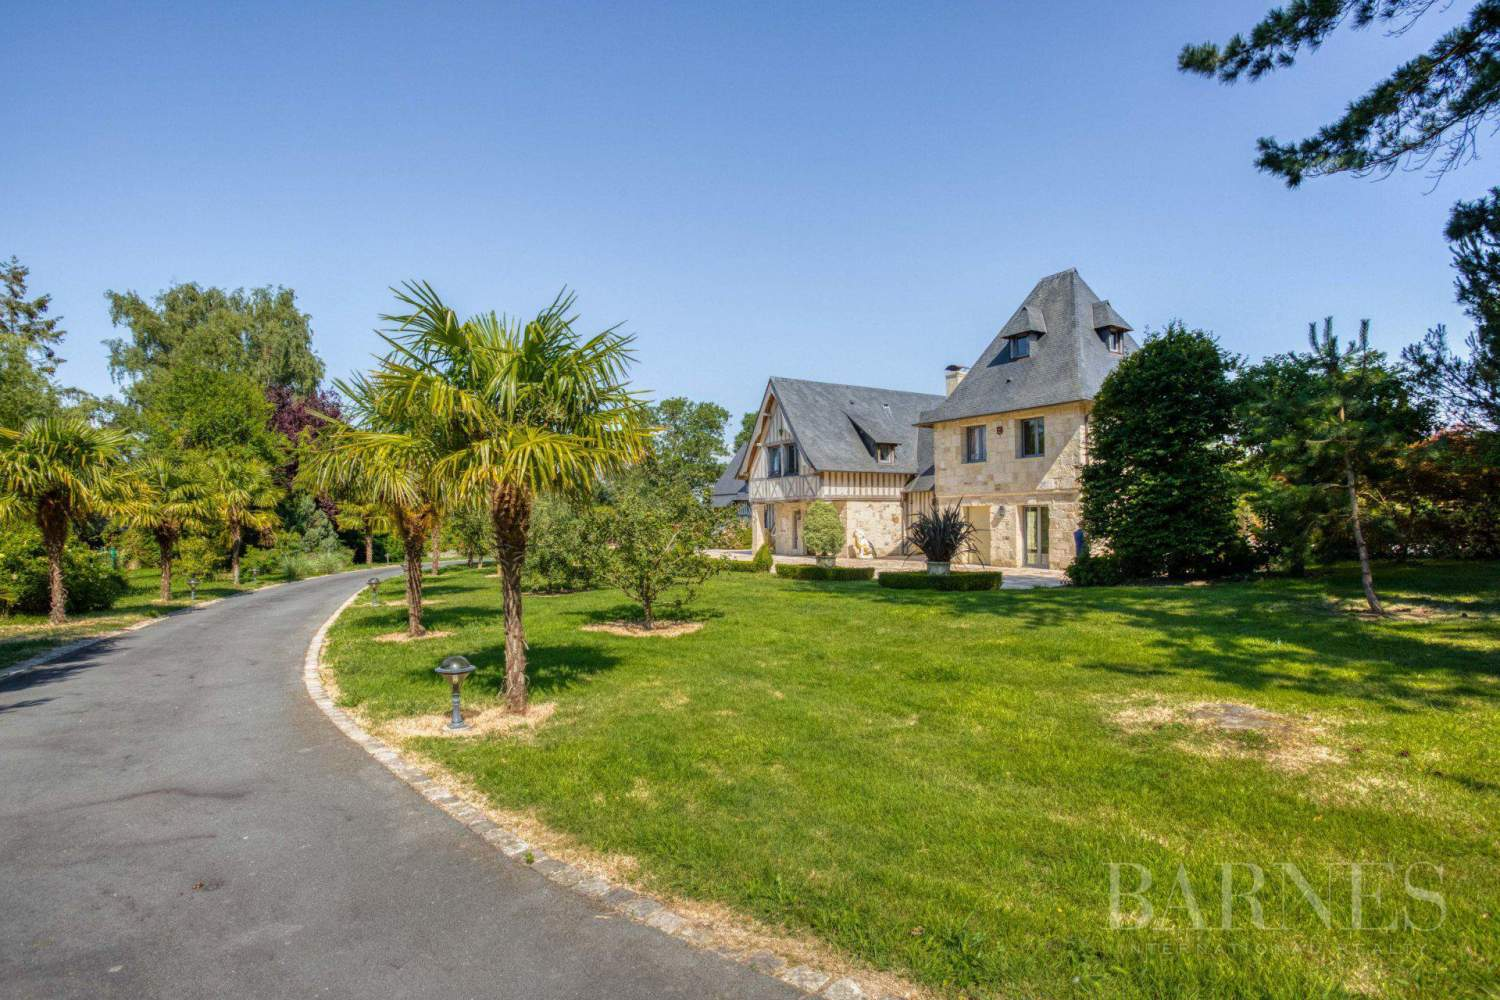 For sale - Charming and high-quality property - Close to Deauville picture 1